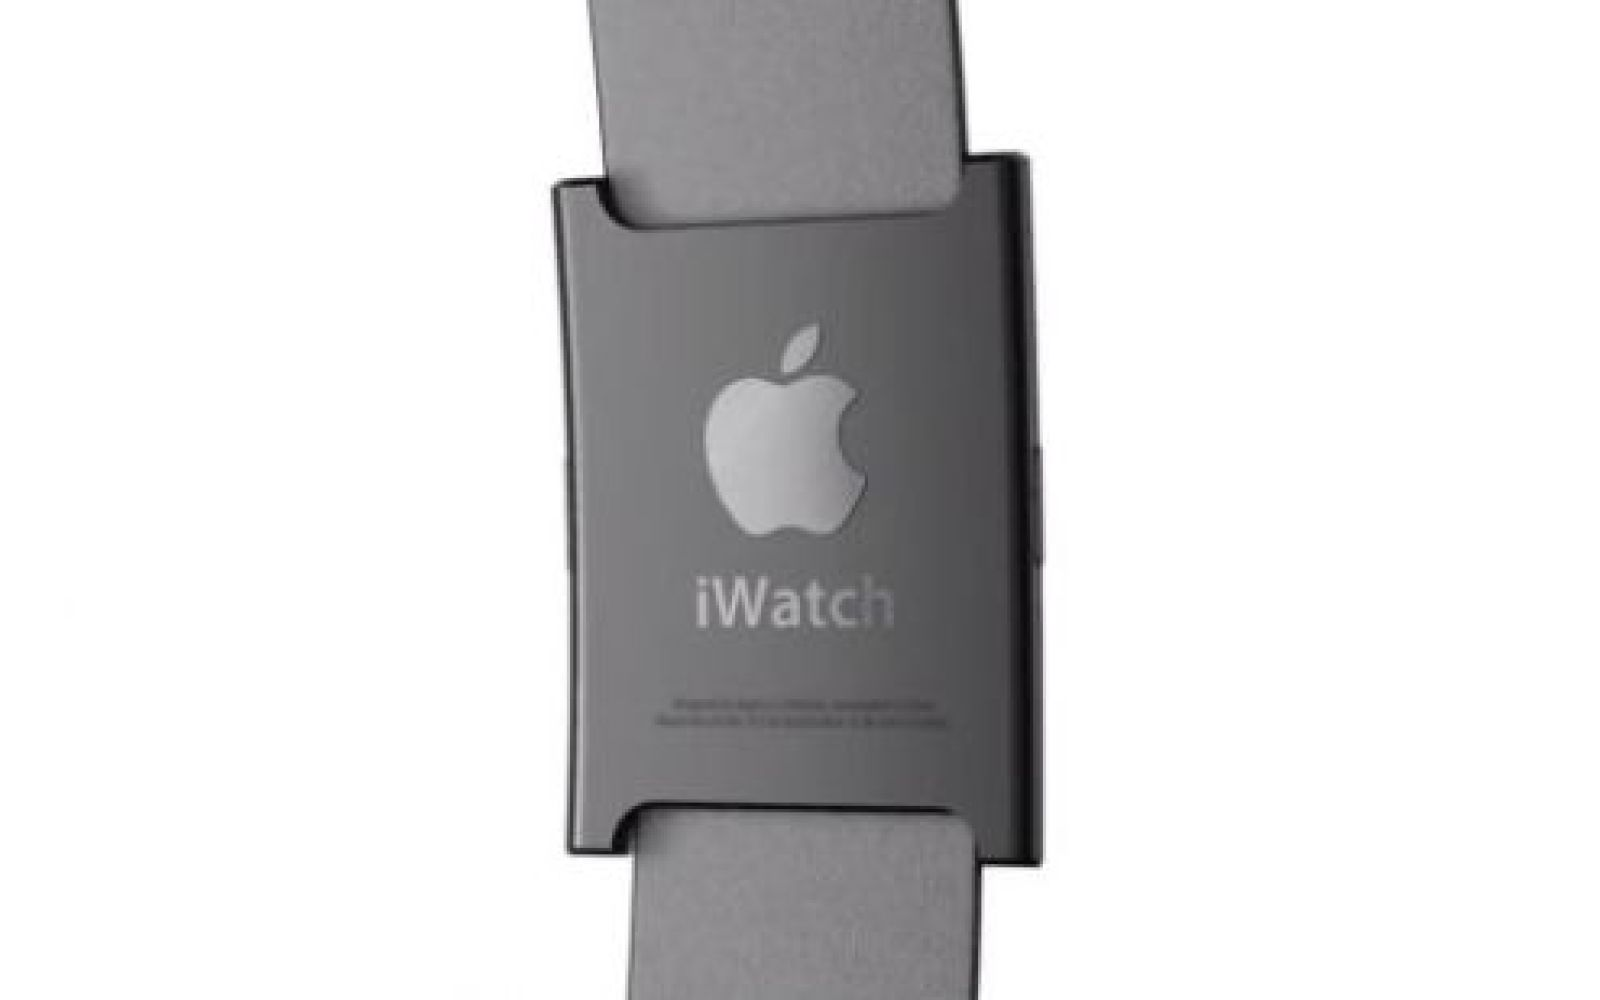 Korean rumor suggests iWatch has 1.5-inch curved OLED, set for summer launch